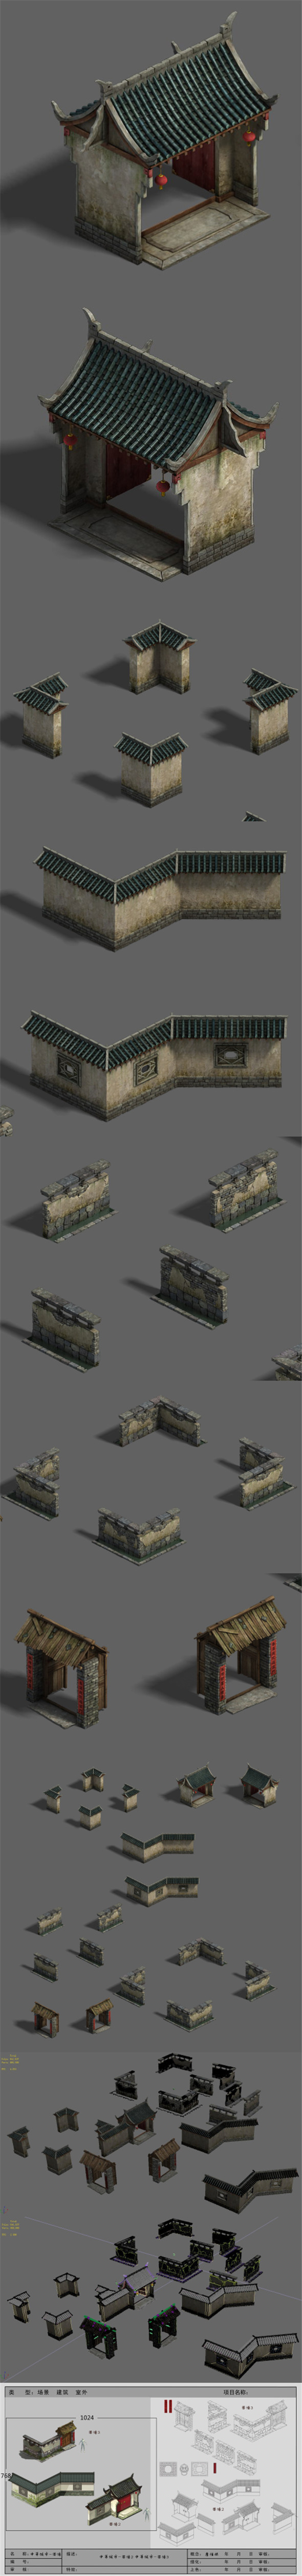 Medium City - Wall 02 - 3DOcean Item for Sale